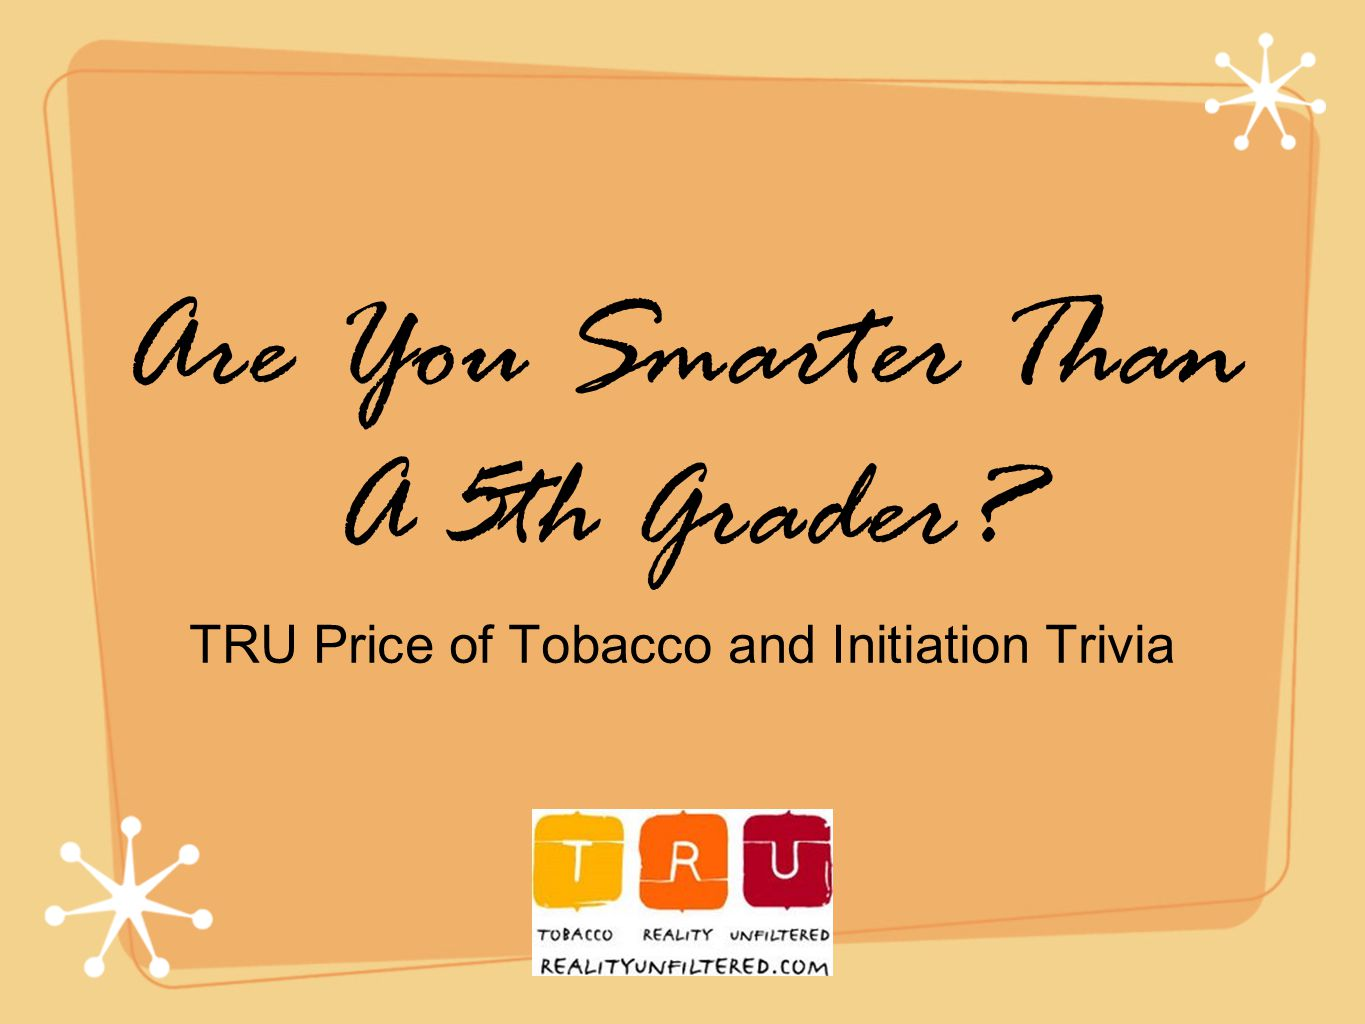 Are You Smarter Than A 5th Grader? TRU Price of Tobacco and Initiation Trivia